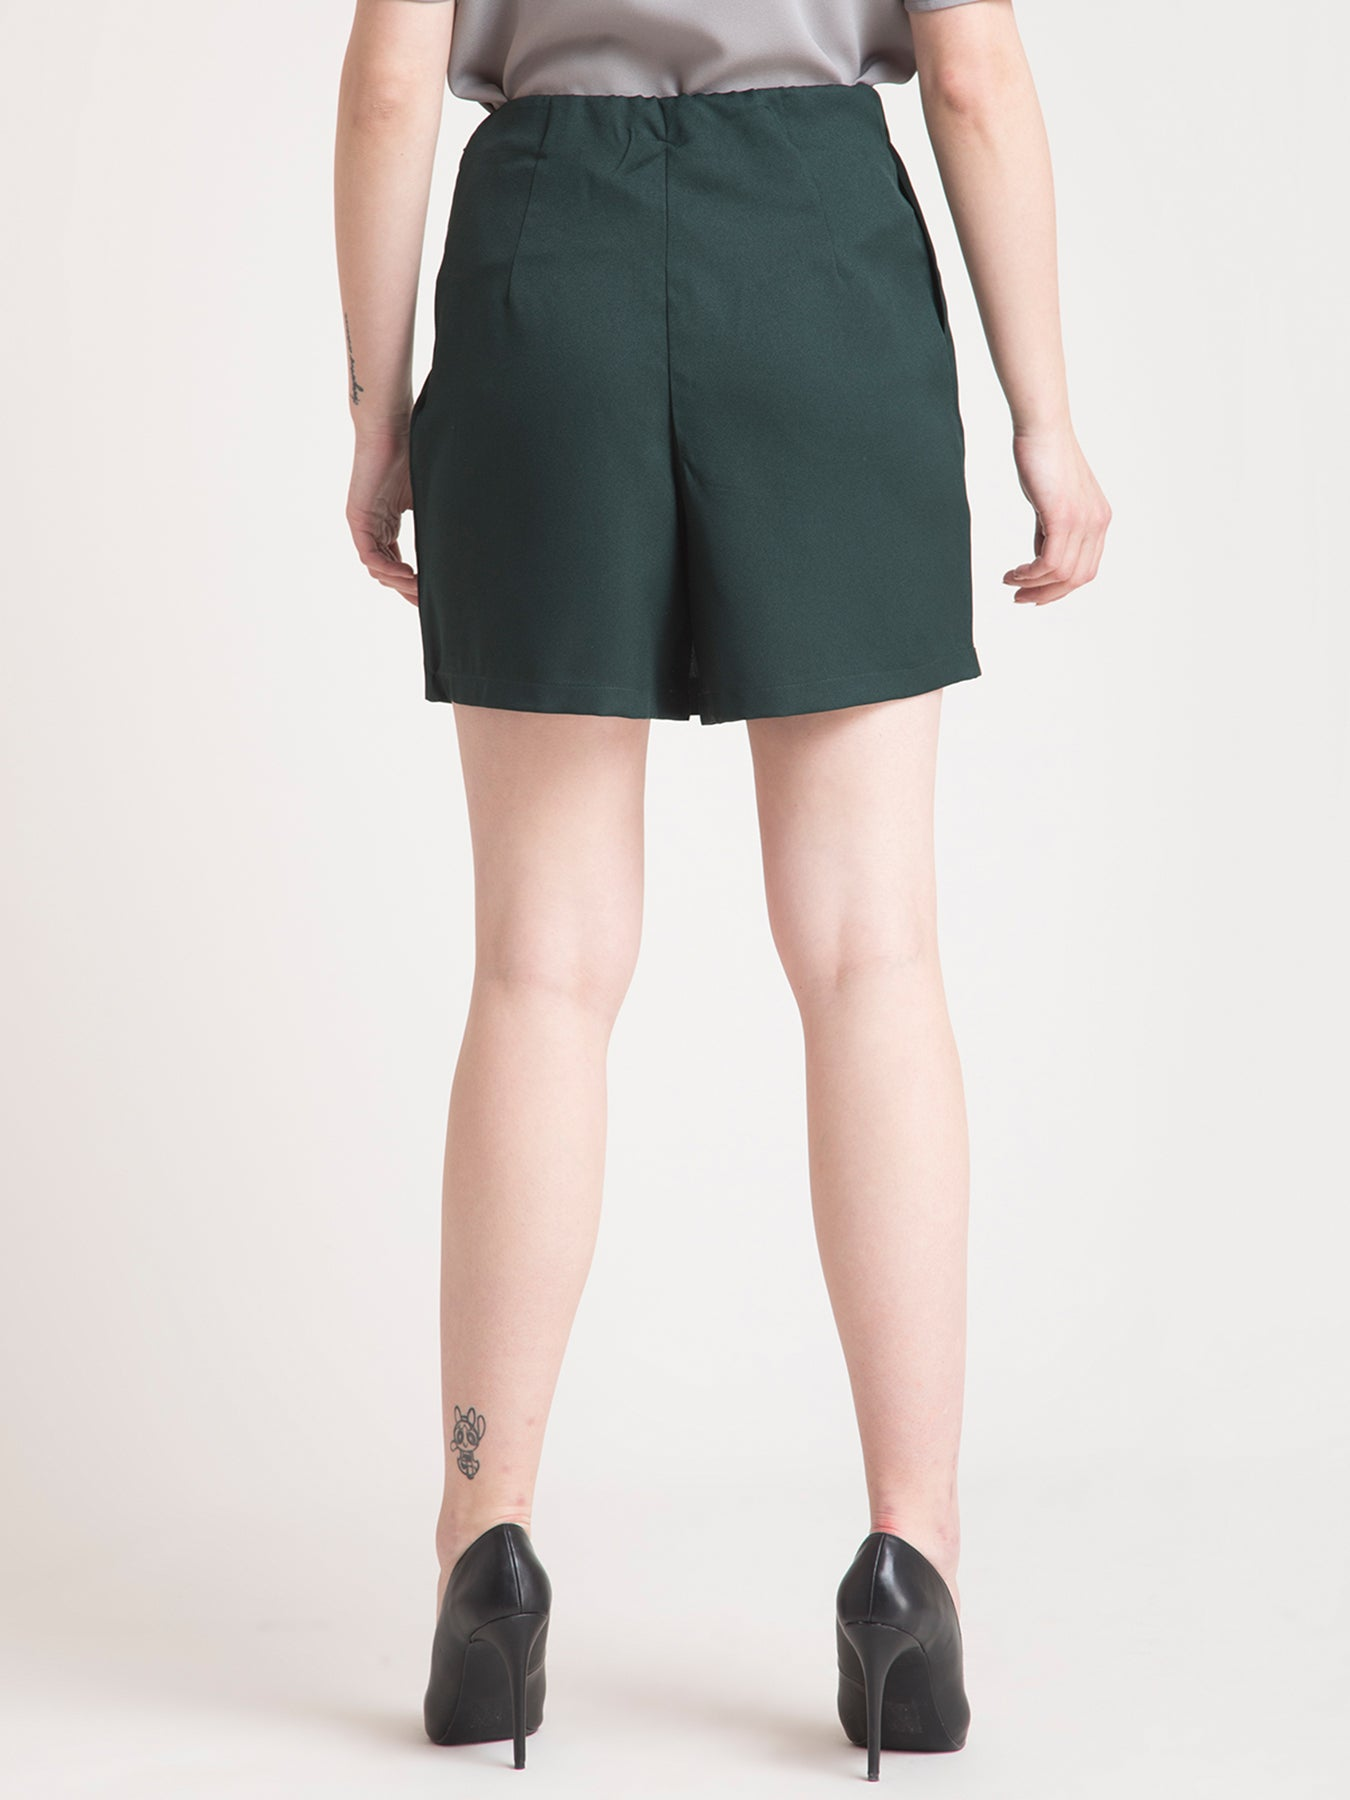 Overlap Detail Shorts - Green